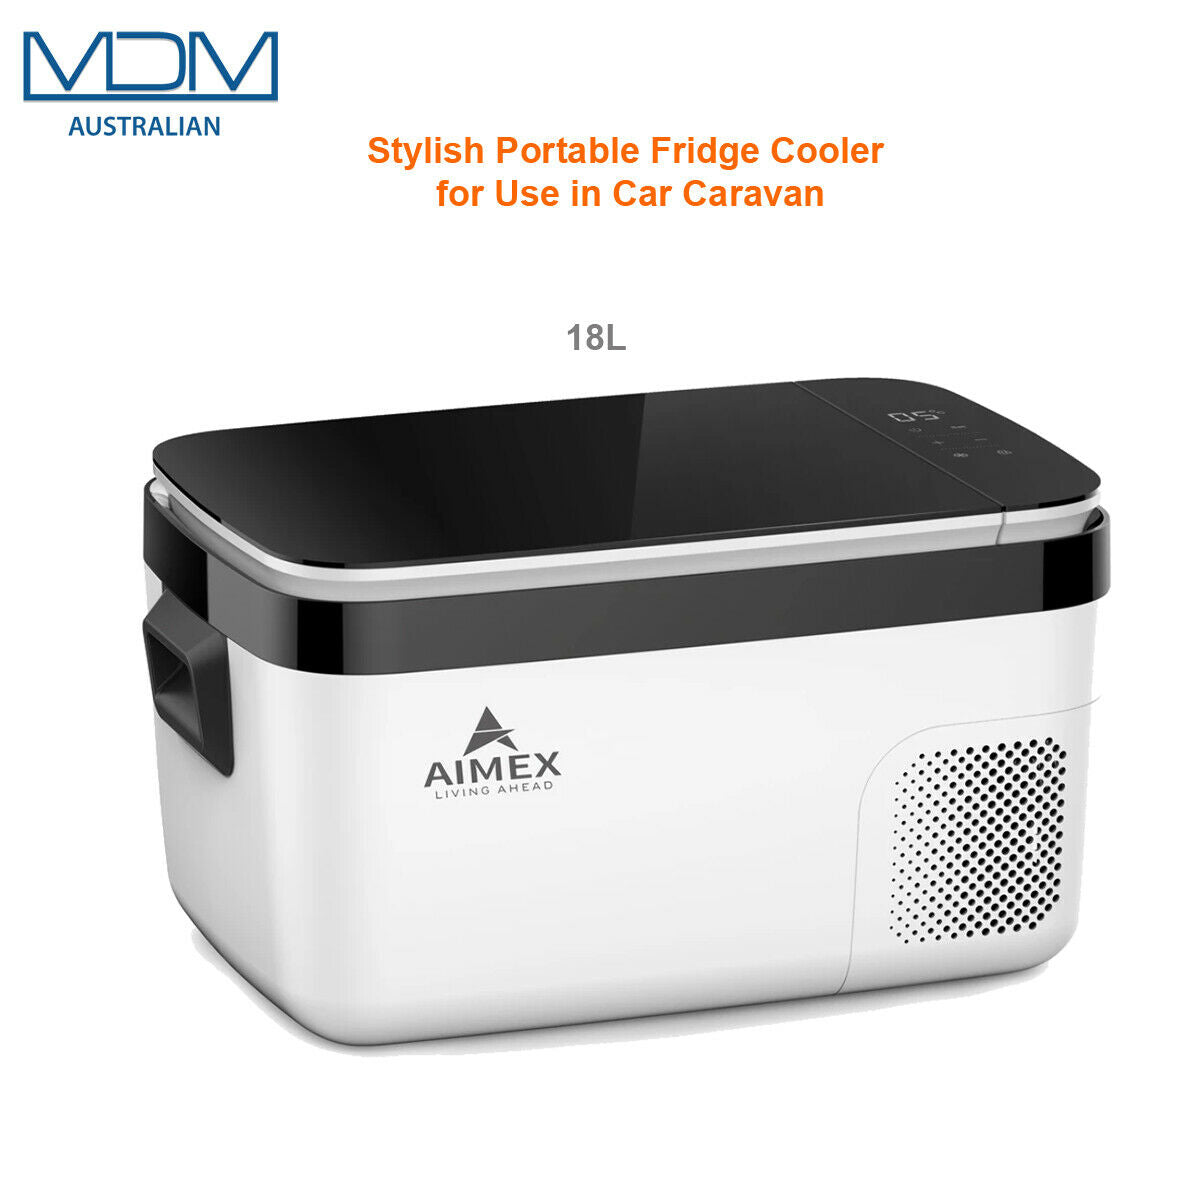 Stylish Portable Fridge Cooler Outing Hiking Caping Use in Car Caravan 18L Aimex - MDMAustralian